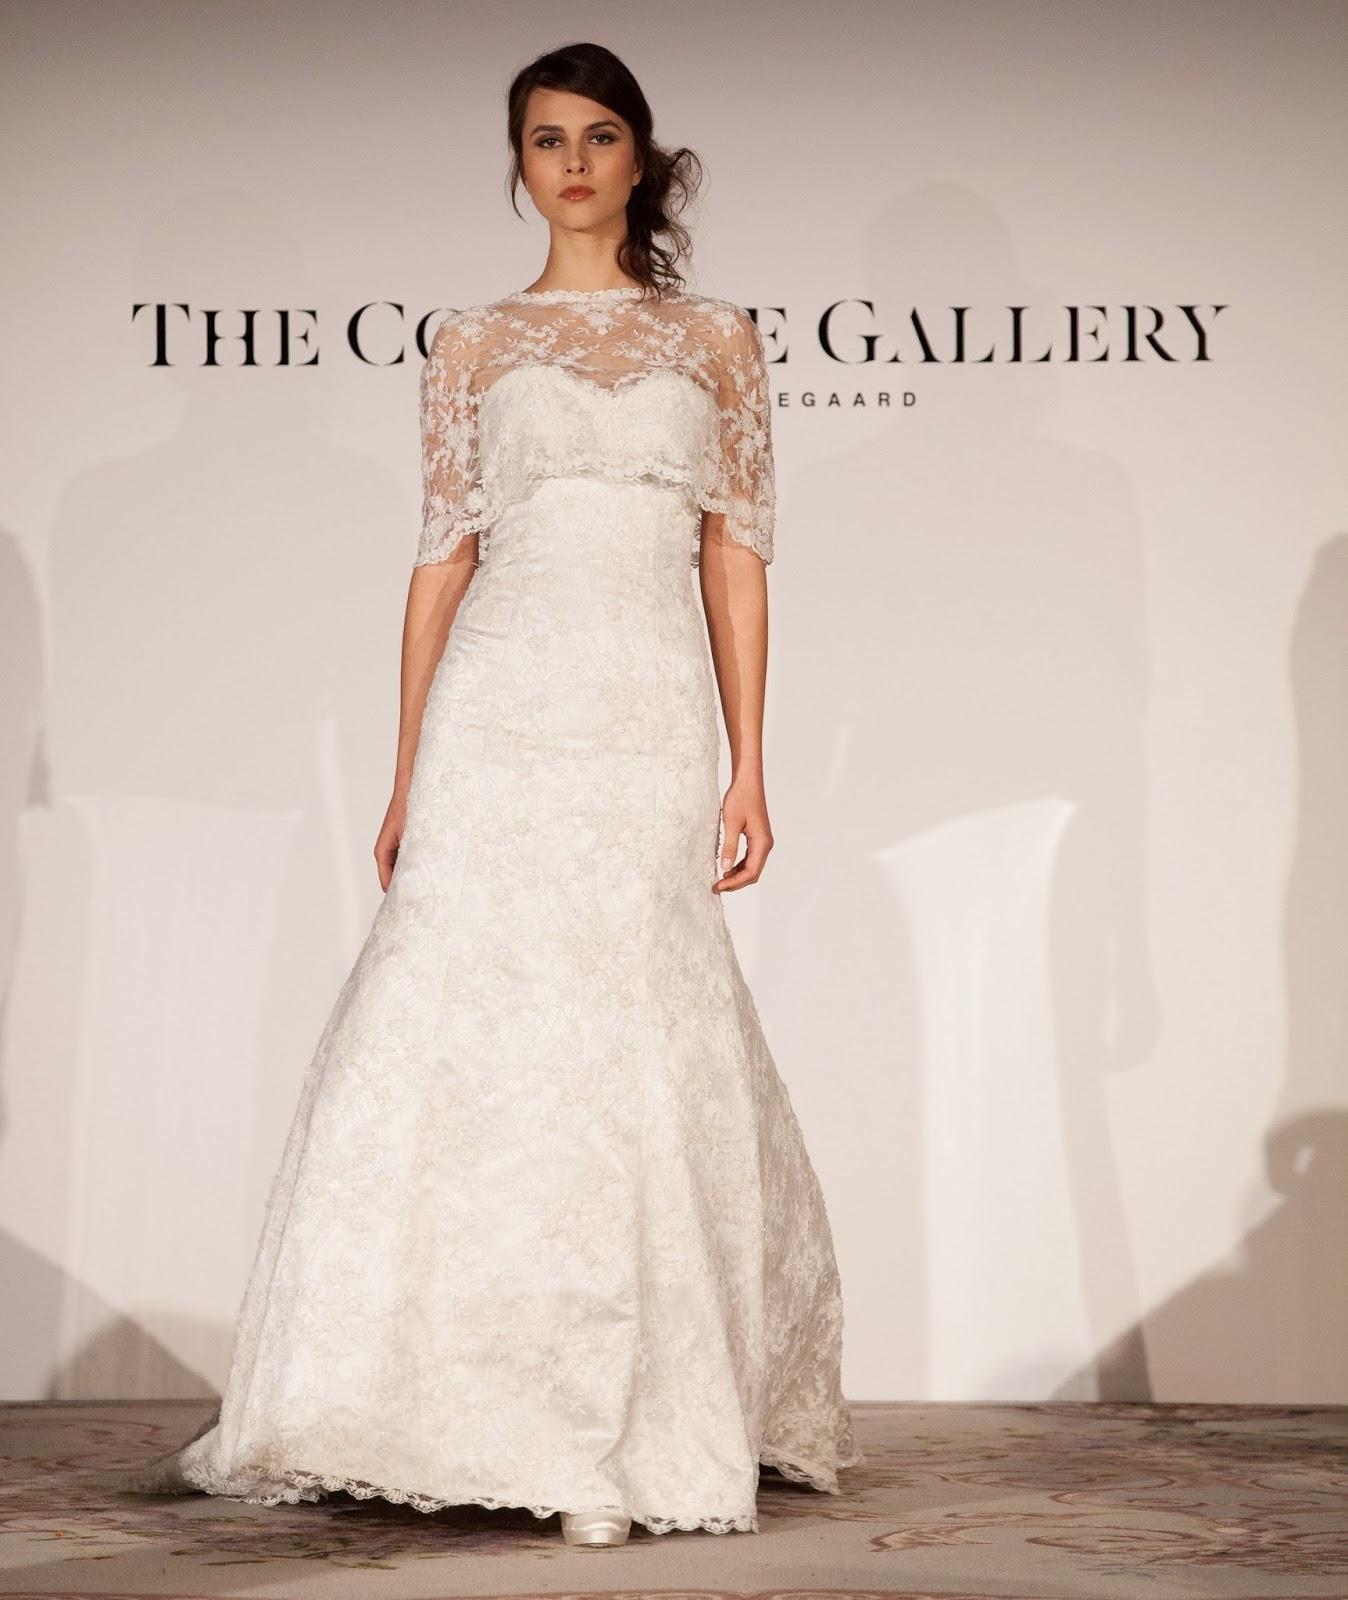 The Couture Gallery Spring 2014 Bridal Collection